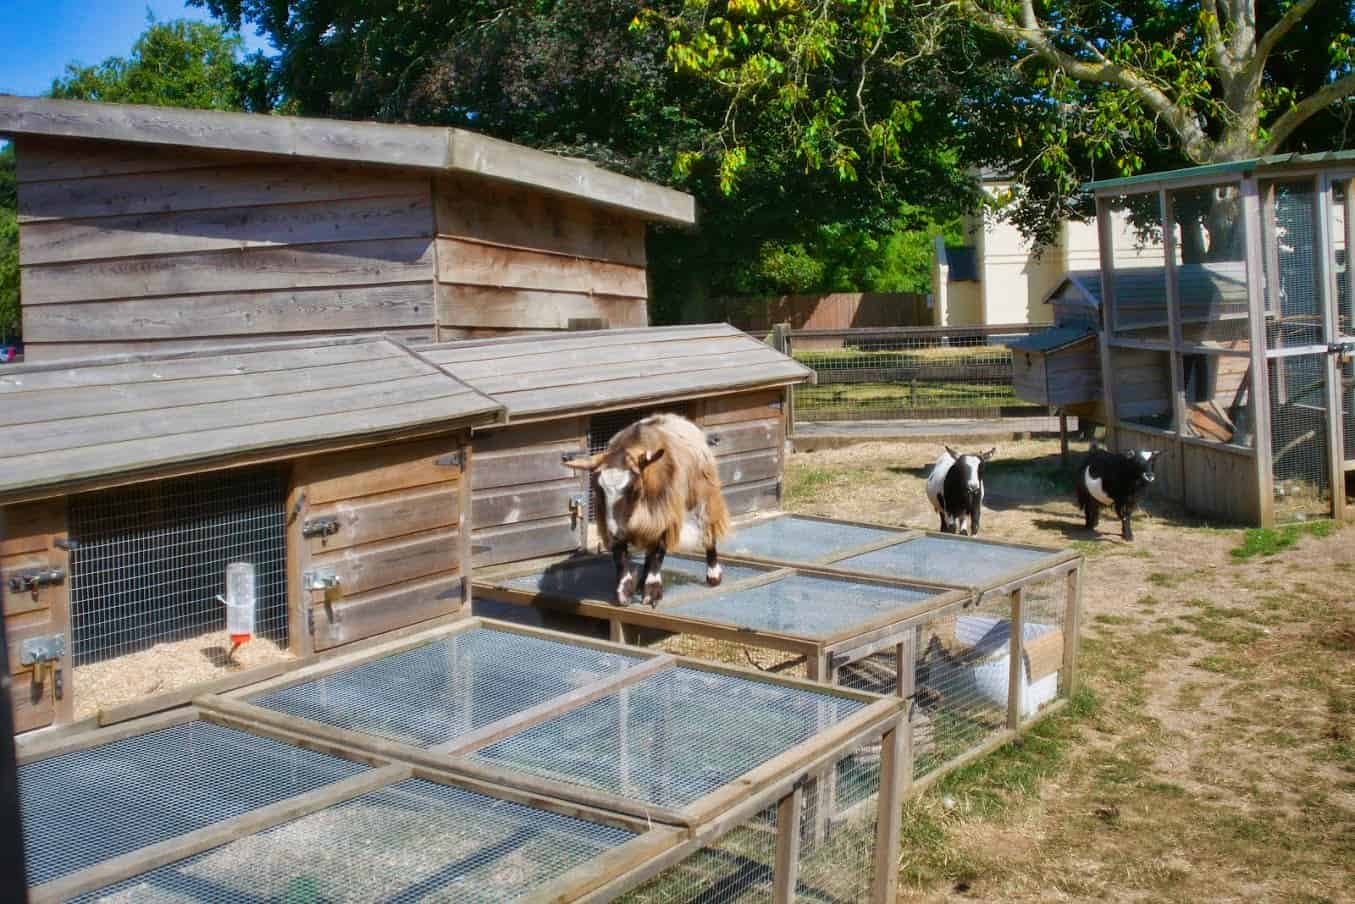 A goat standing on top of a chicken pen